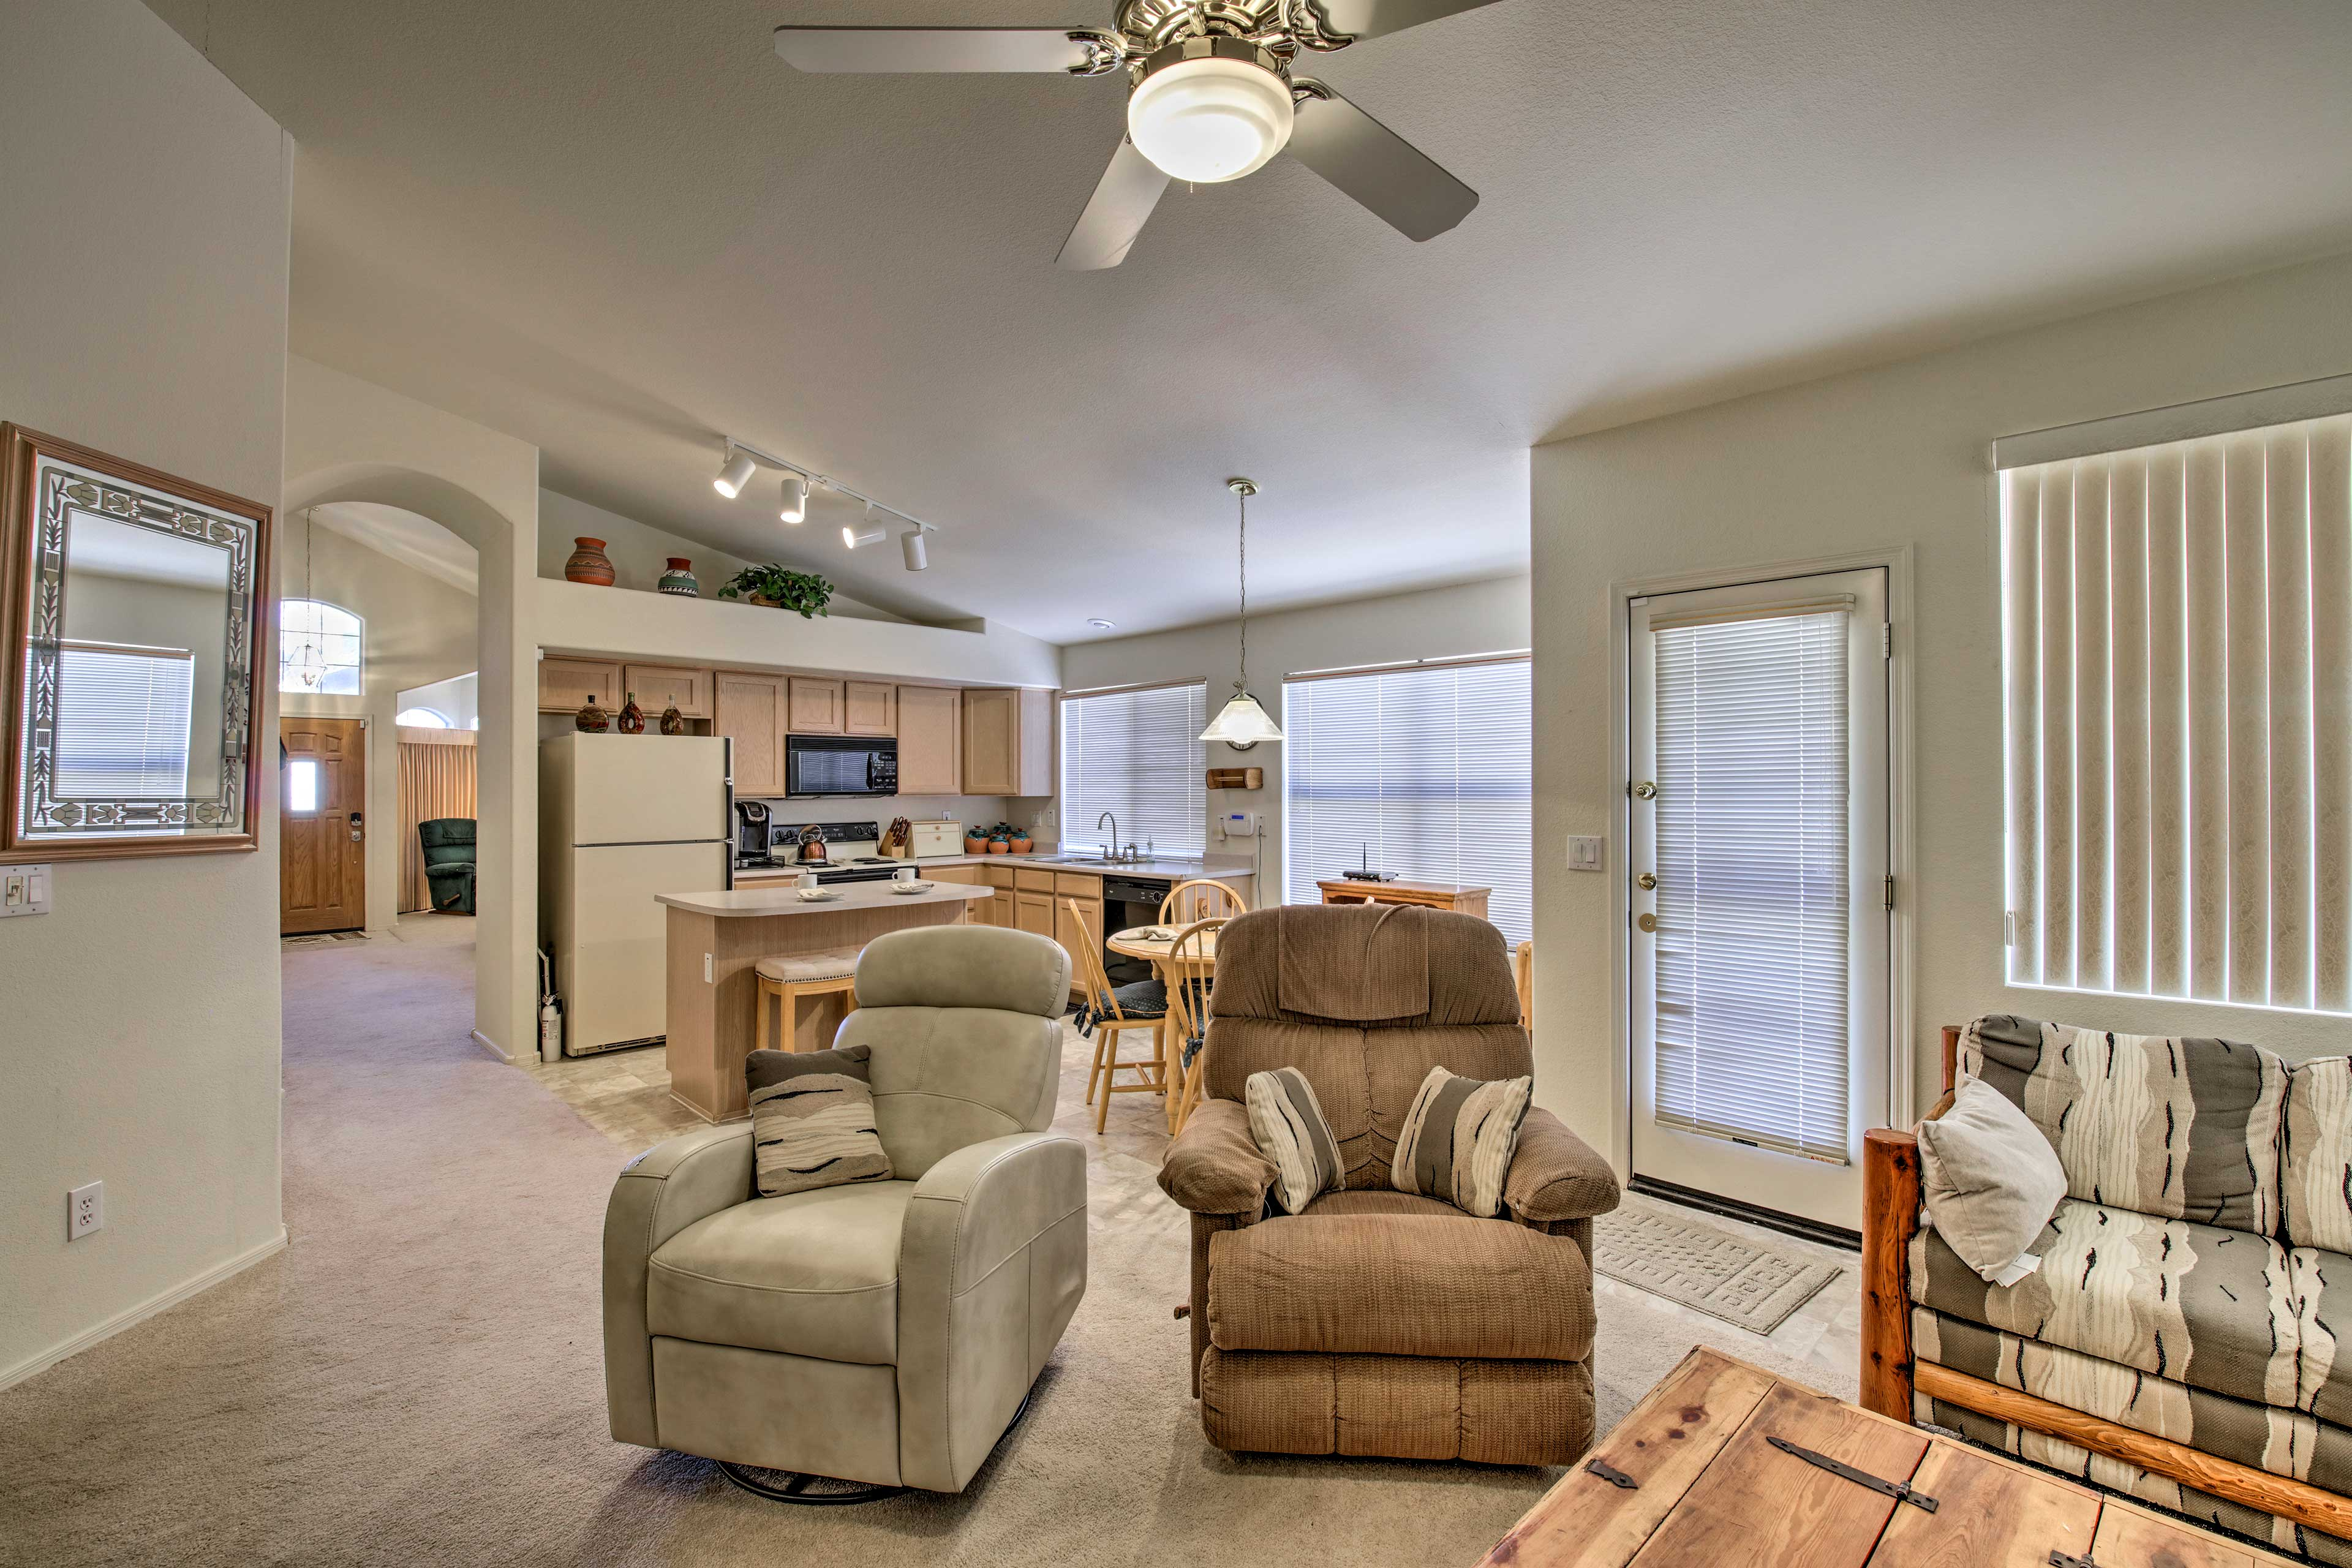 Lounge around in the living room, which has plenty of room for 6 guests.